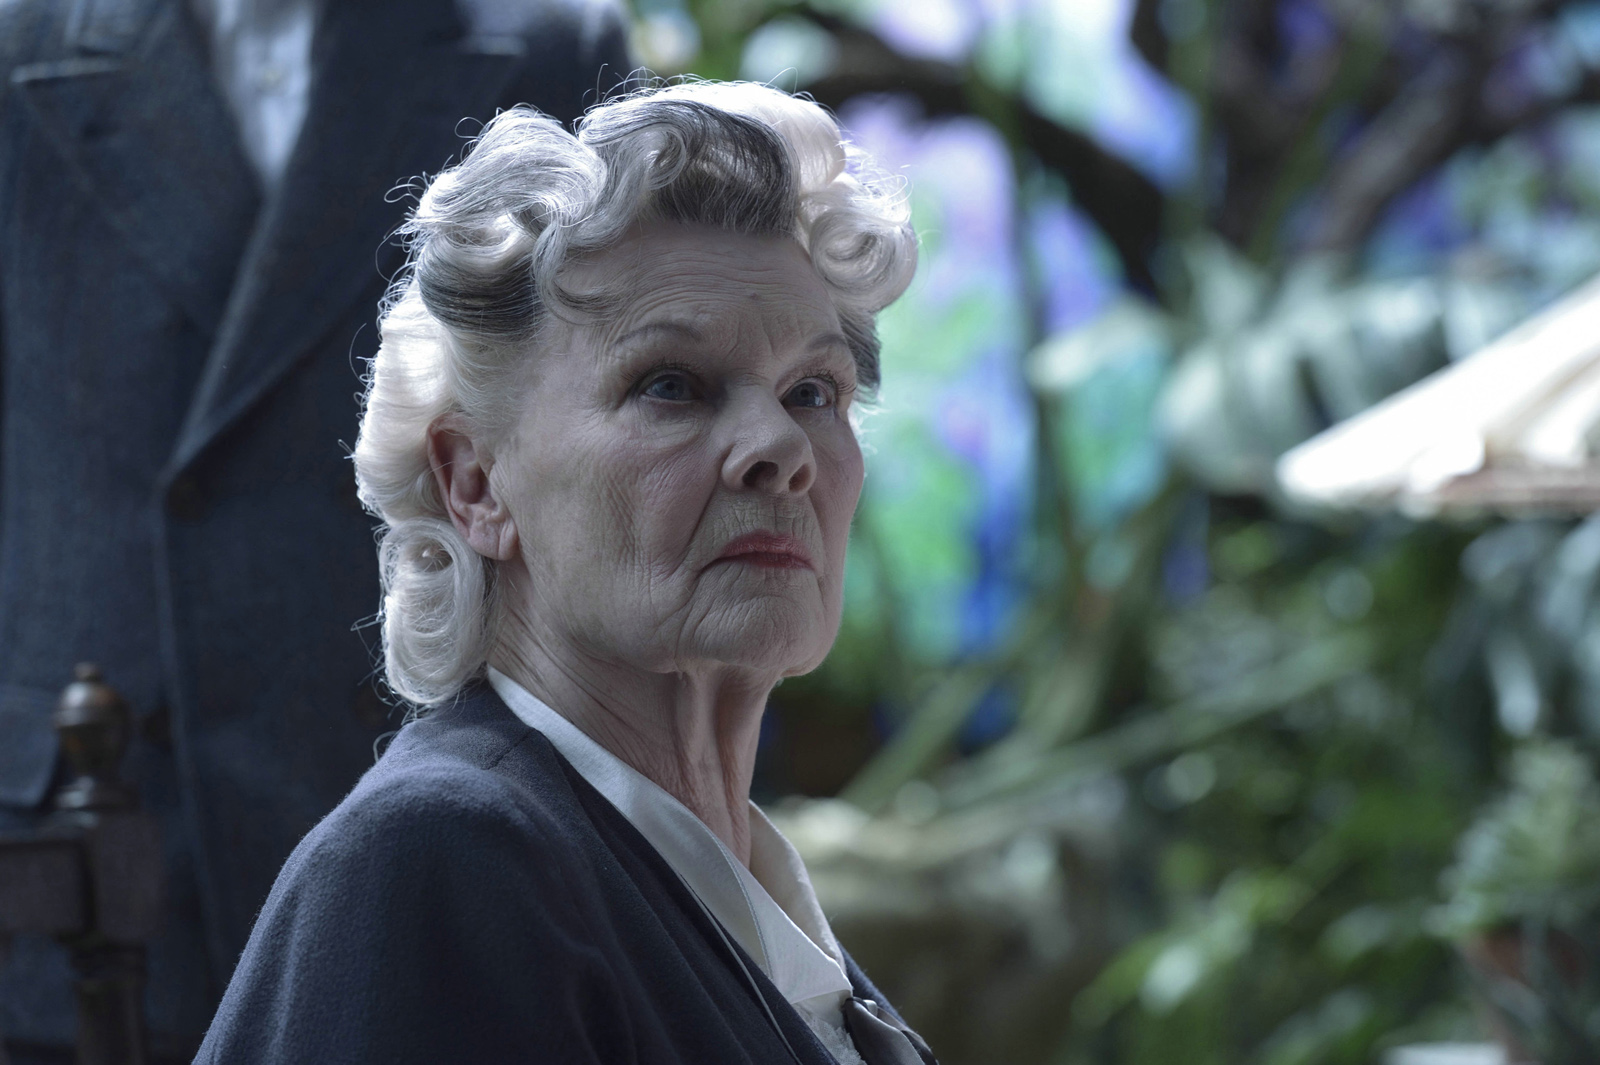 Miss Avocet (Judi Dench)